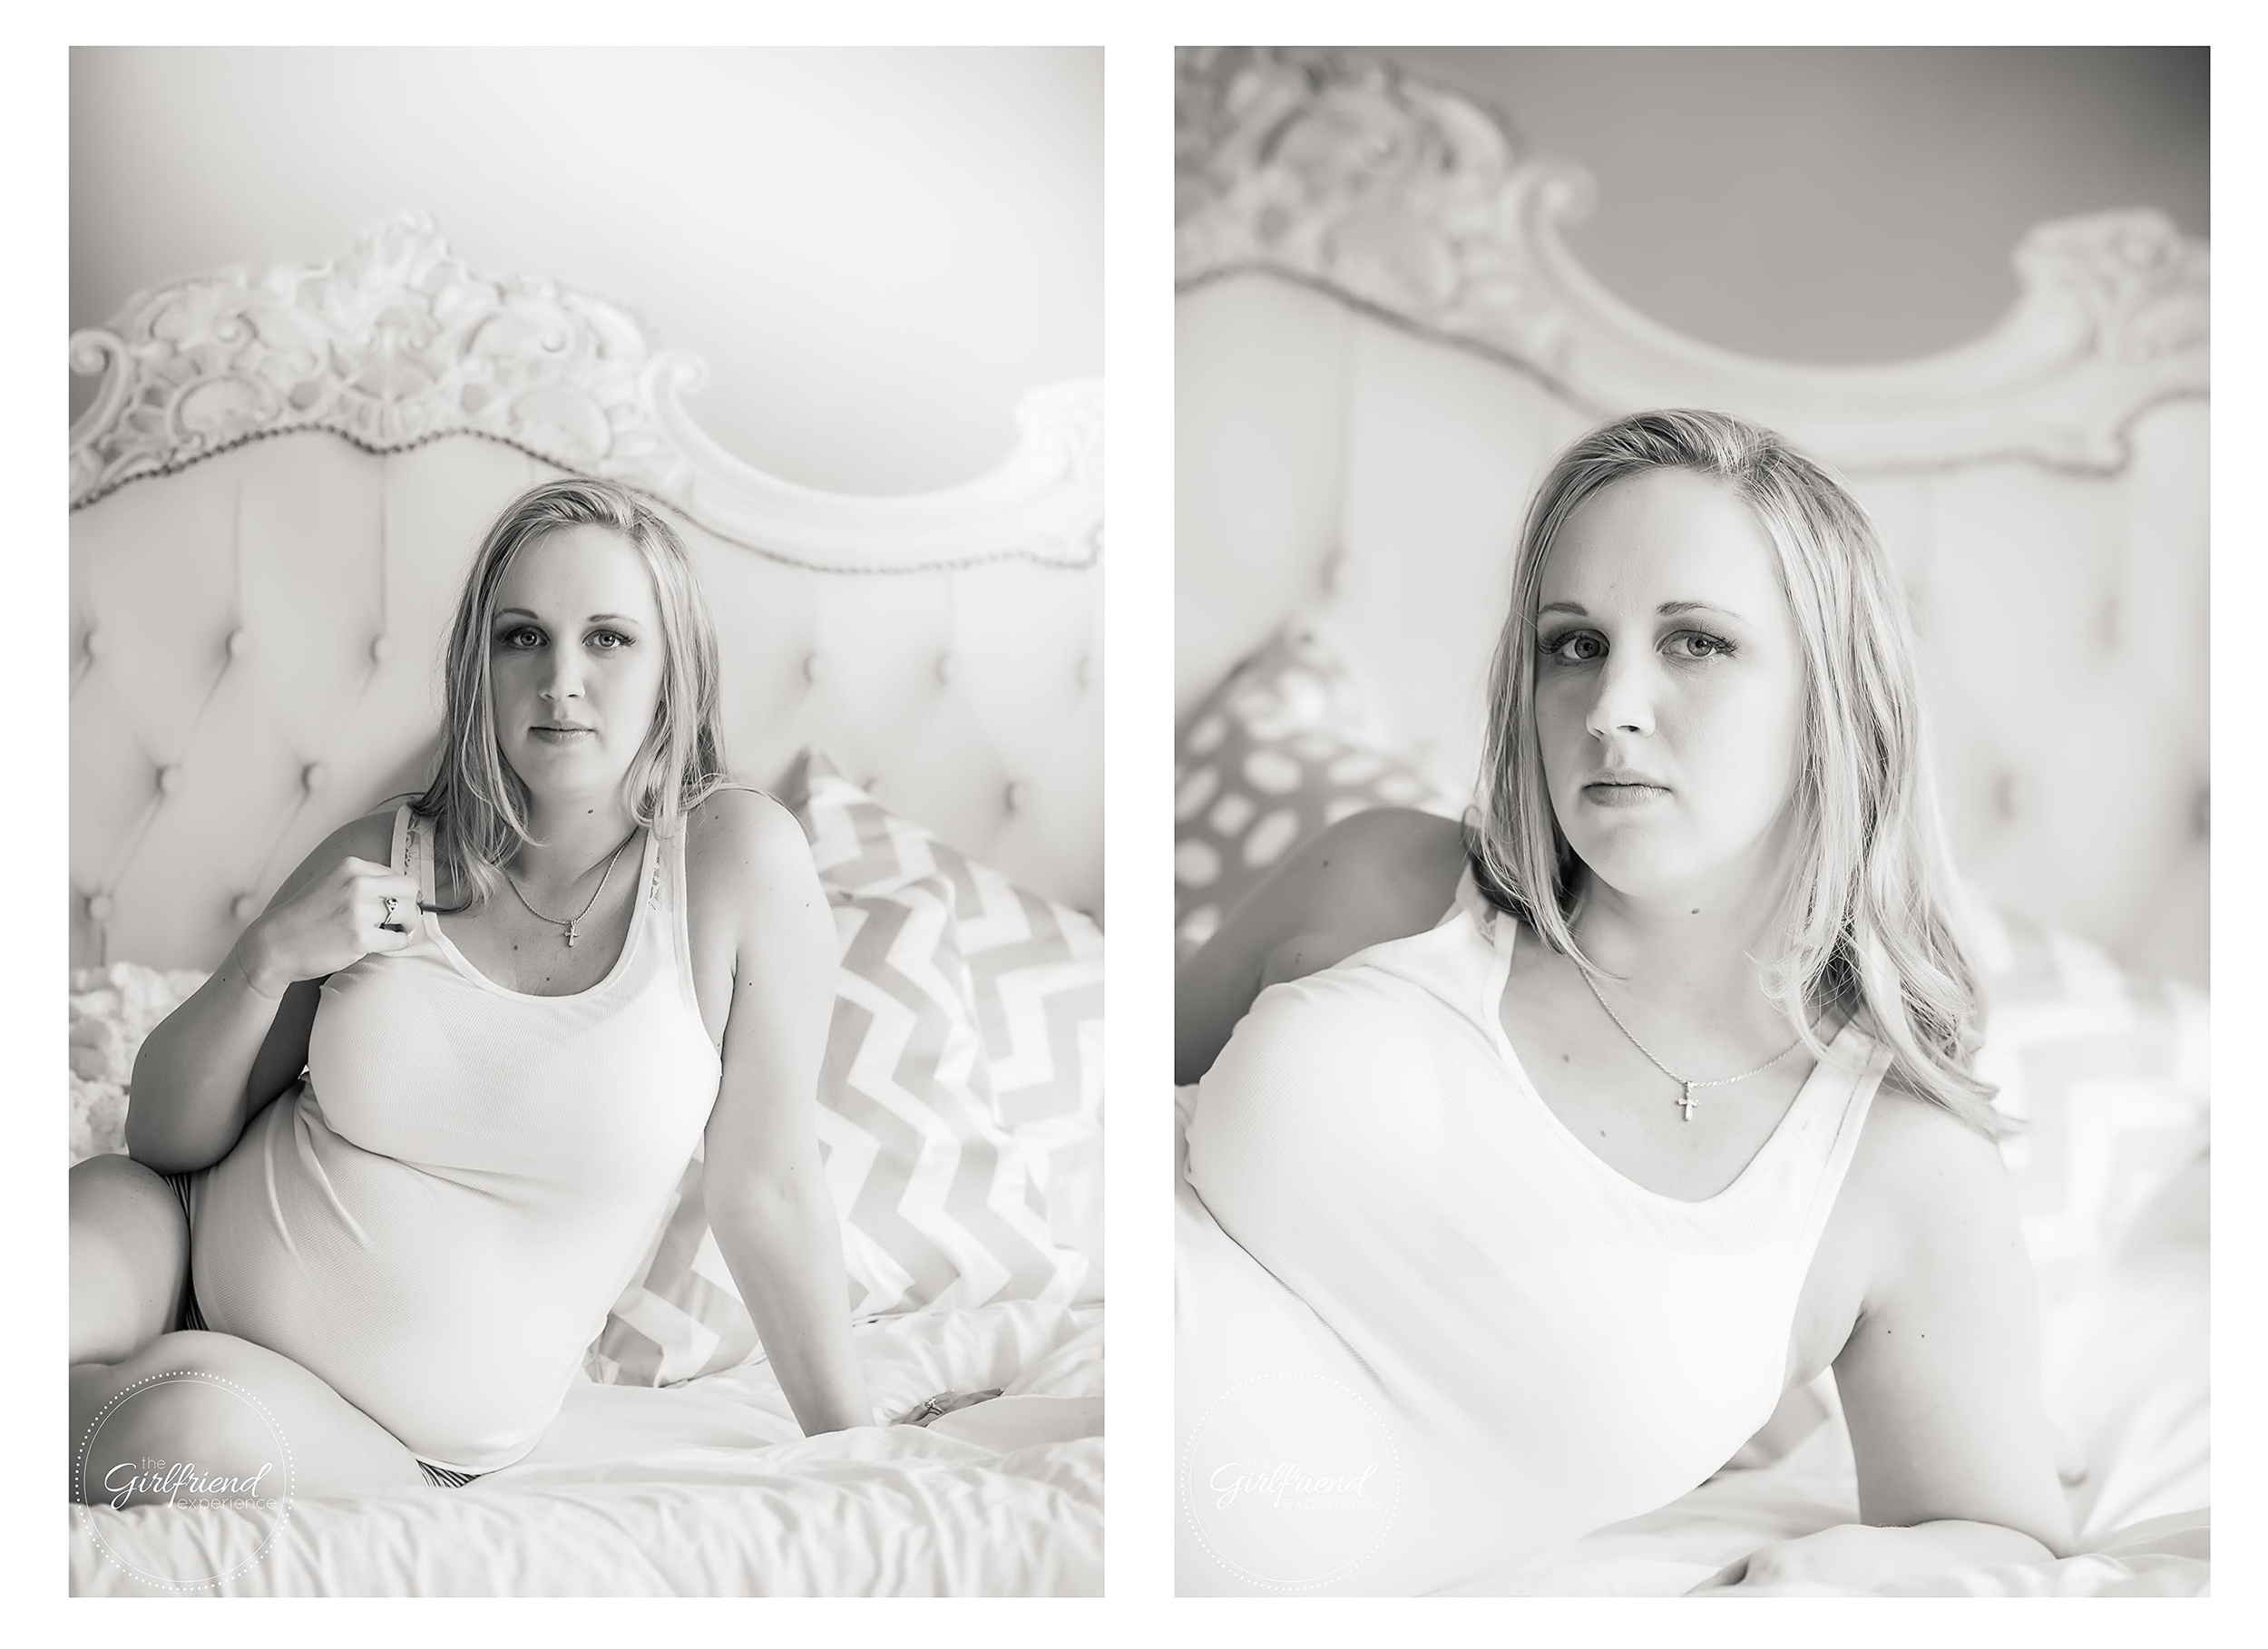 pittsburgh boudoir glamour maternity photography strip district the girlfriend experience boudoir